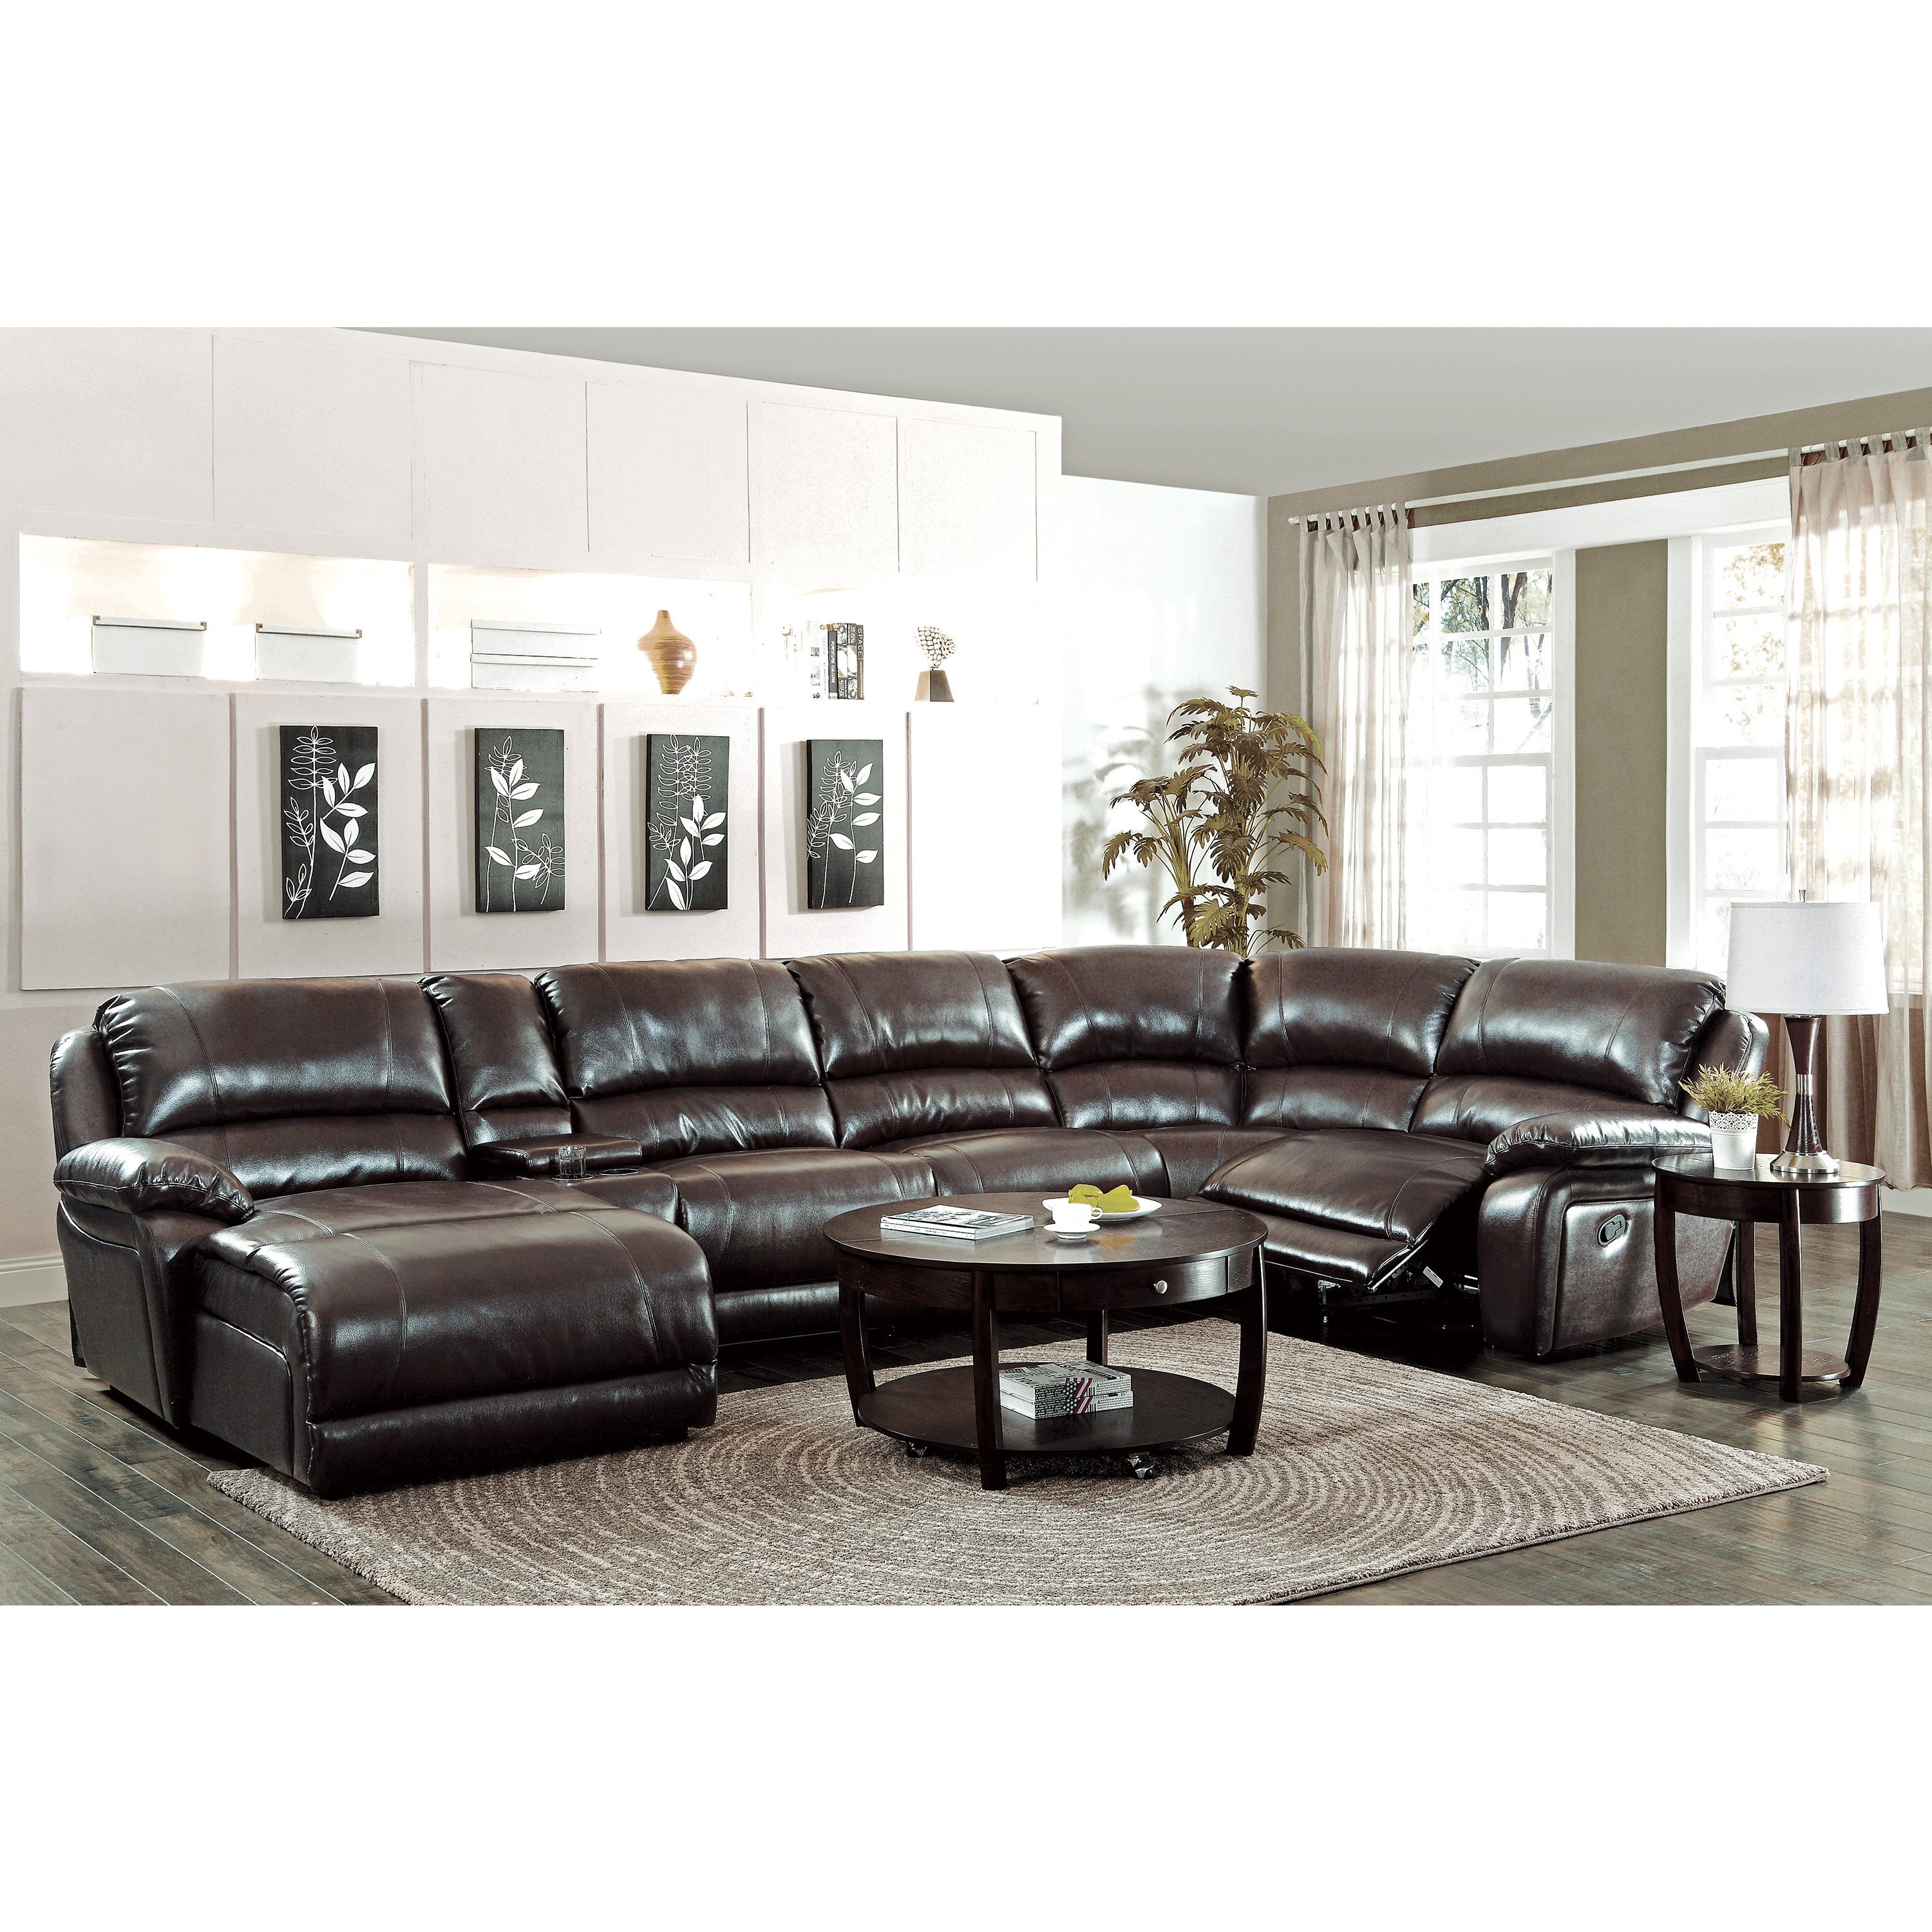 products reclining number item by faux nantahala with design signature ashley chaise leather sectional recliner